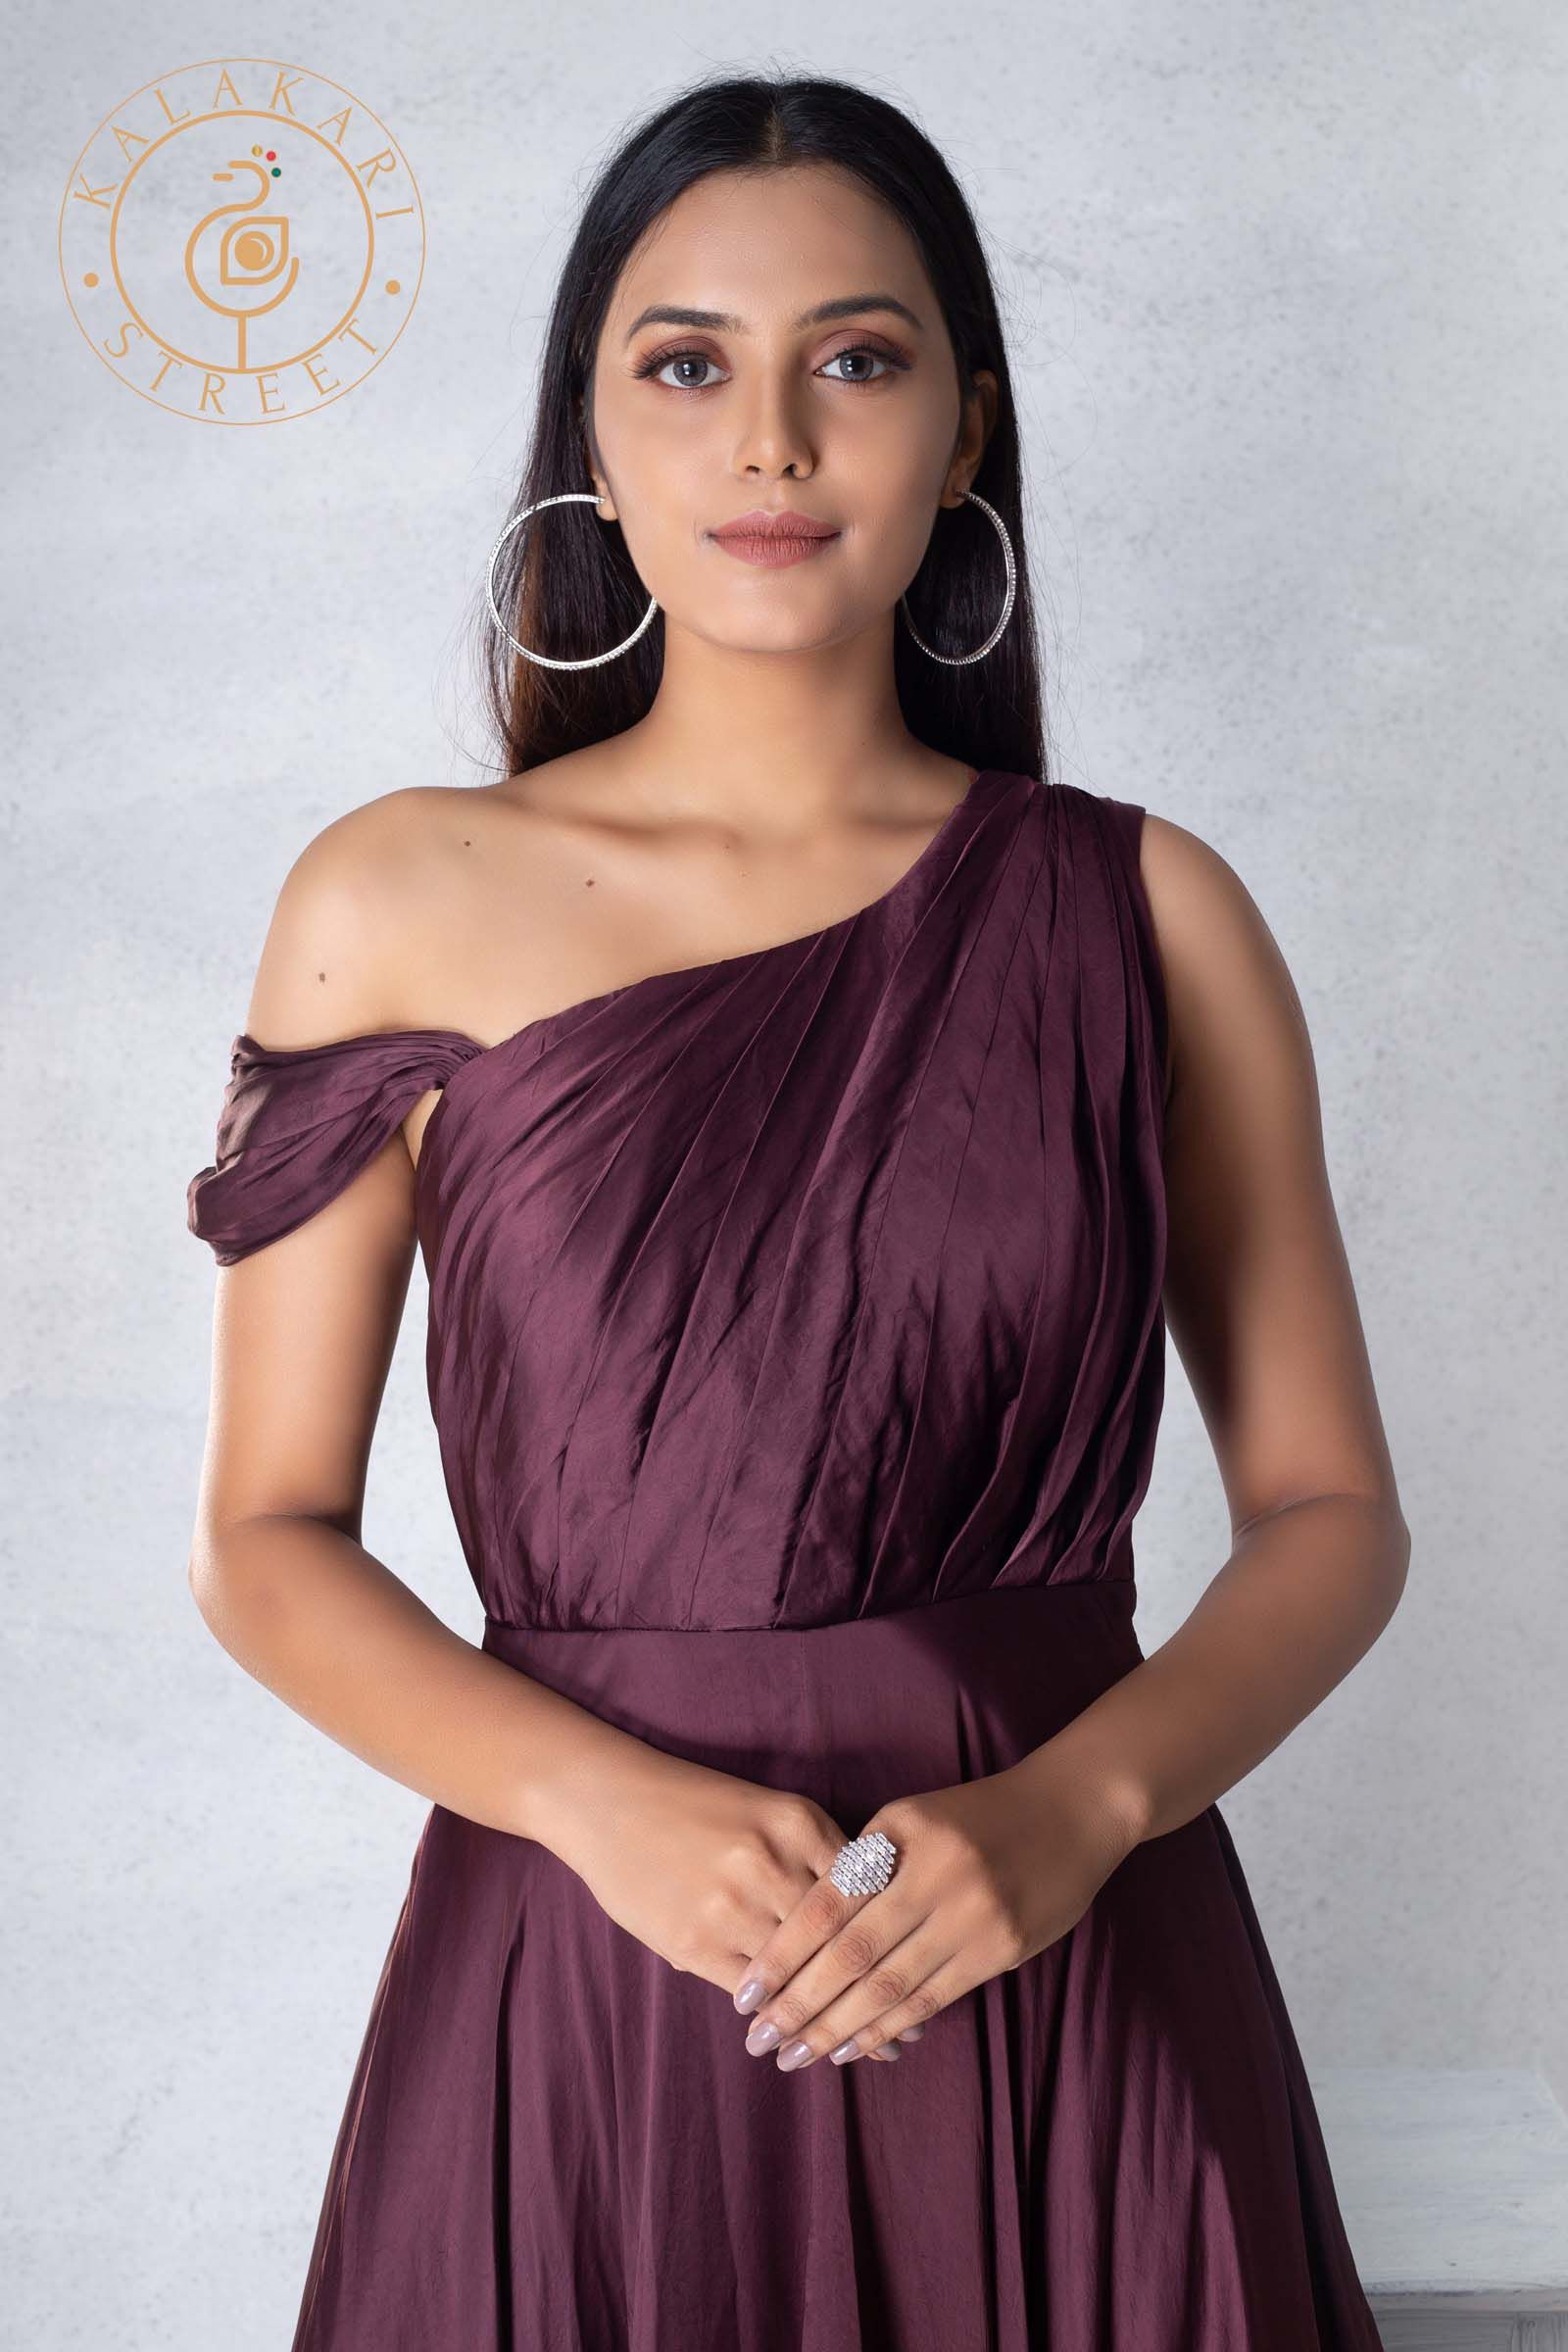 Wine Cocktail Dress By Kyra Chhabria On Kalakari Street Valentines Day Special Collection Cocktail Gowns Dresses For Larger Ladies Stylish Dresses [ 2400 x 1600 Pixel ]